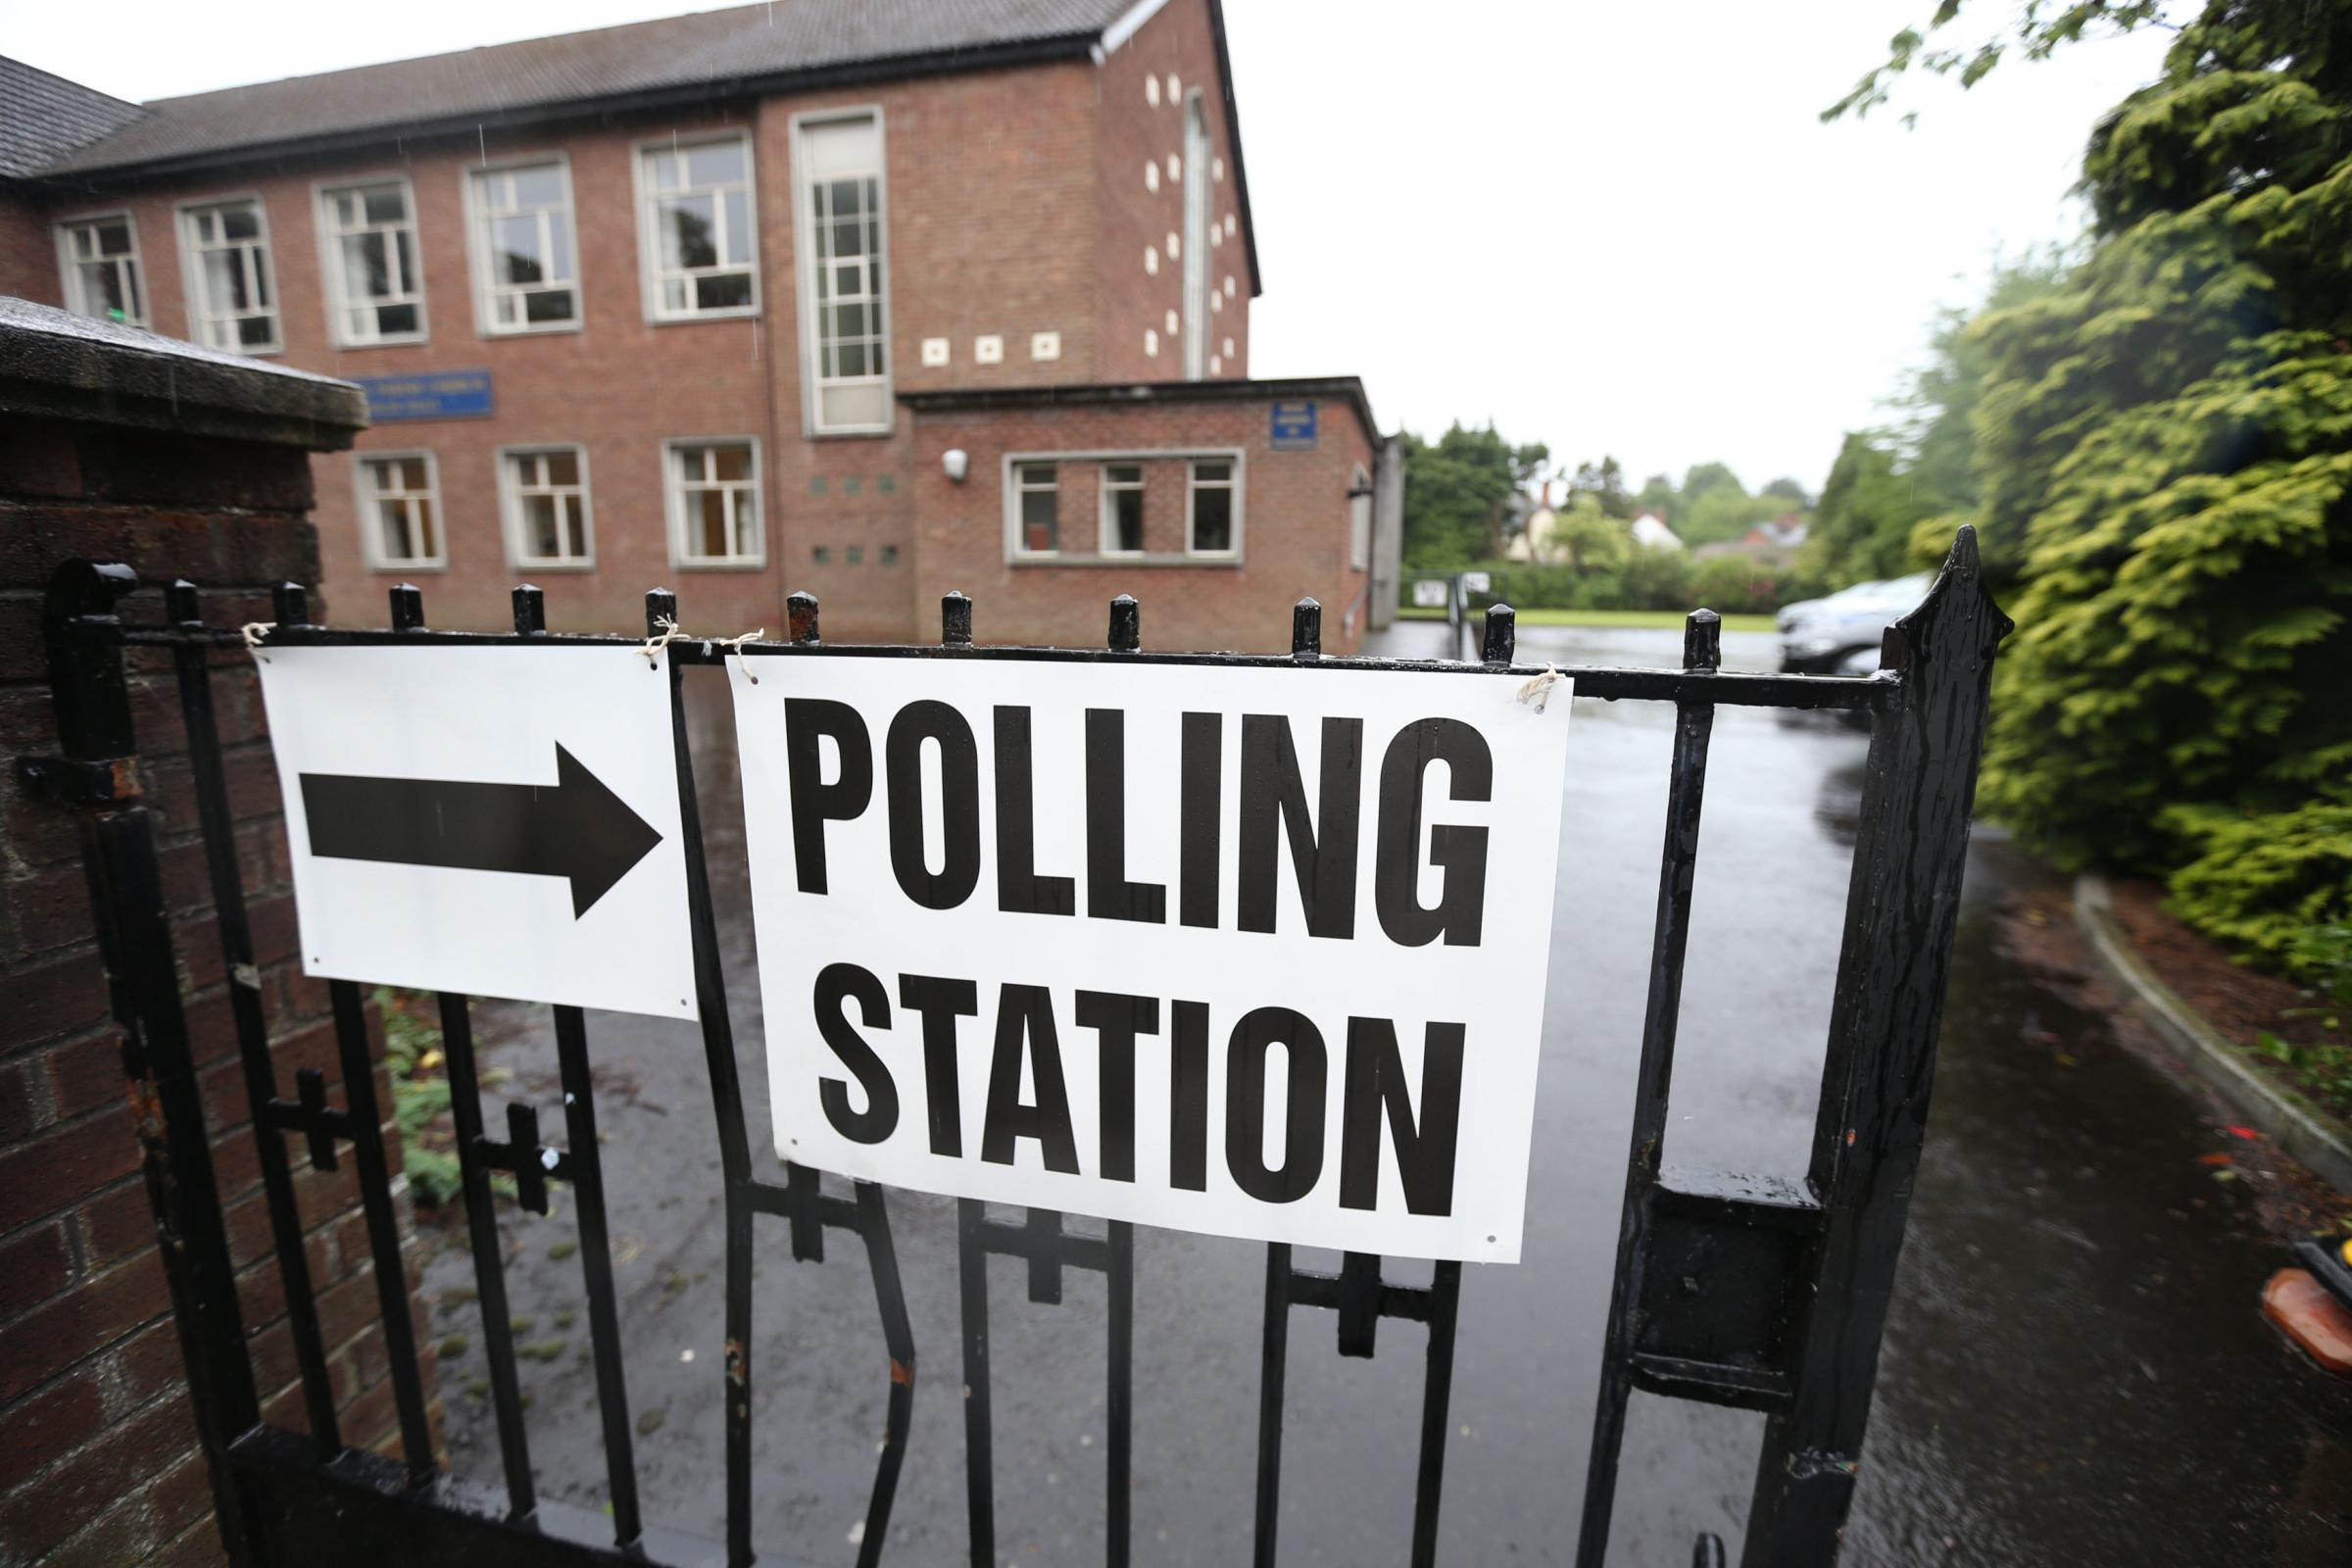 Three reasons we could rue this election results: Herald on Sunday letters